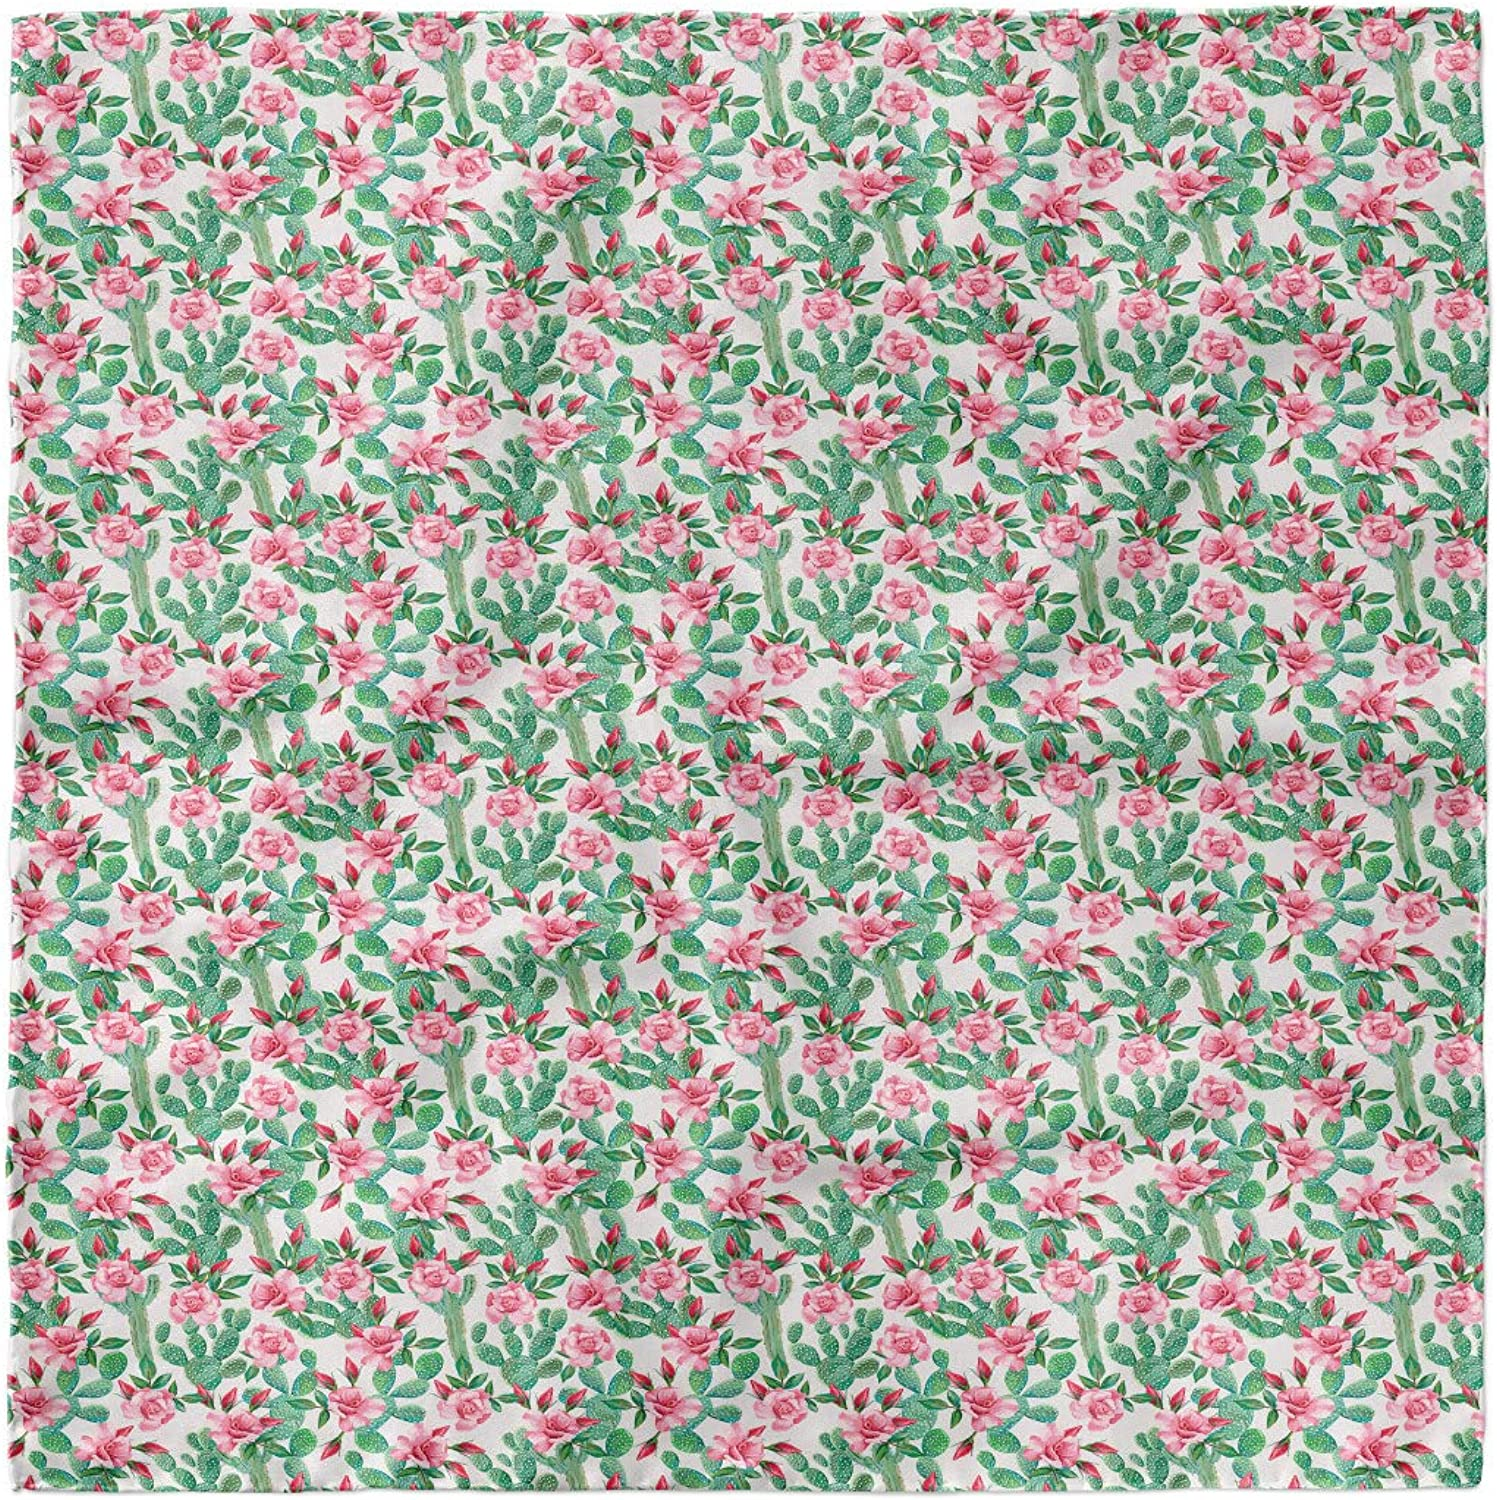 Ambesonne Floral Headscarf Rosebuds with Cactus Art Hijab Scarf